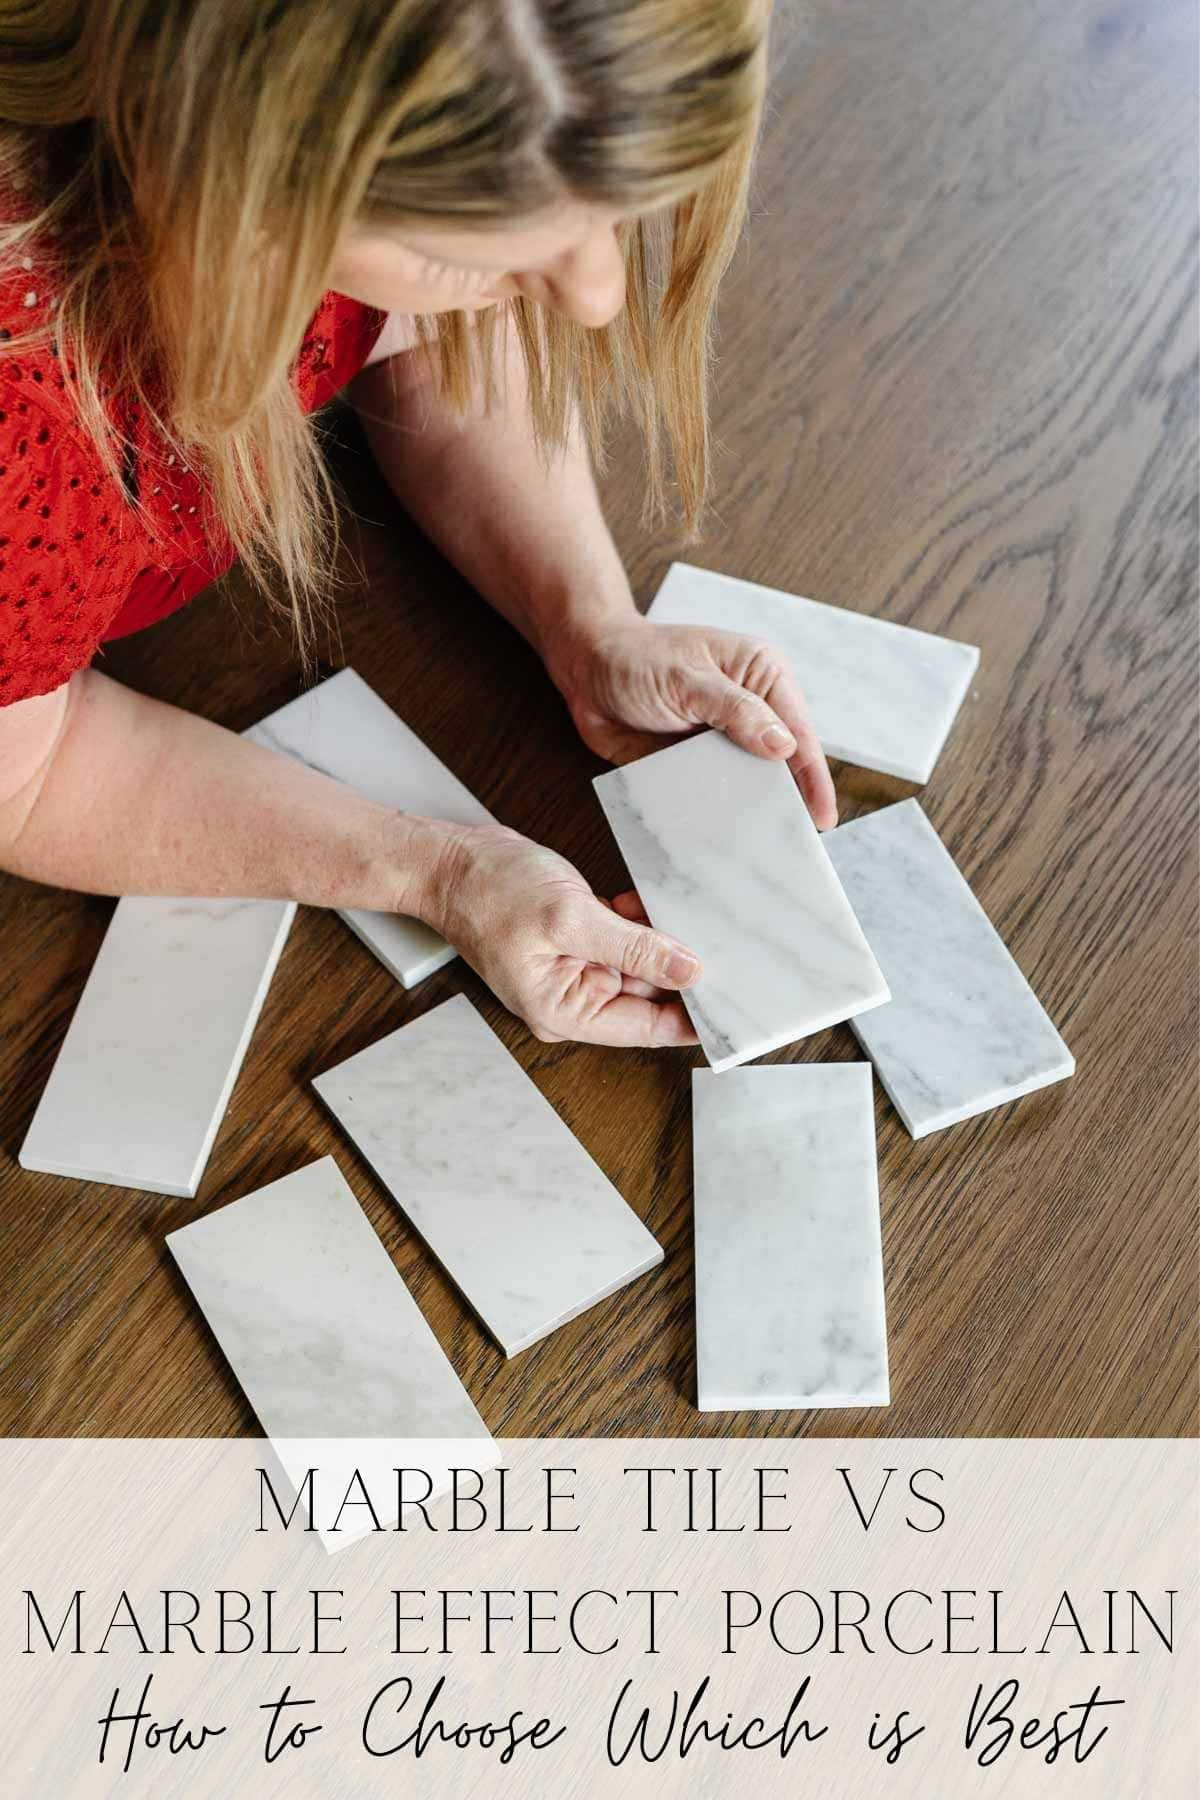 Marble Tile vs Marble Effect Porcelain Tile | The pros and cons of marble tile against marble effect porcelain tile and how to know which is best for your kitchen or bathroom remodel.